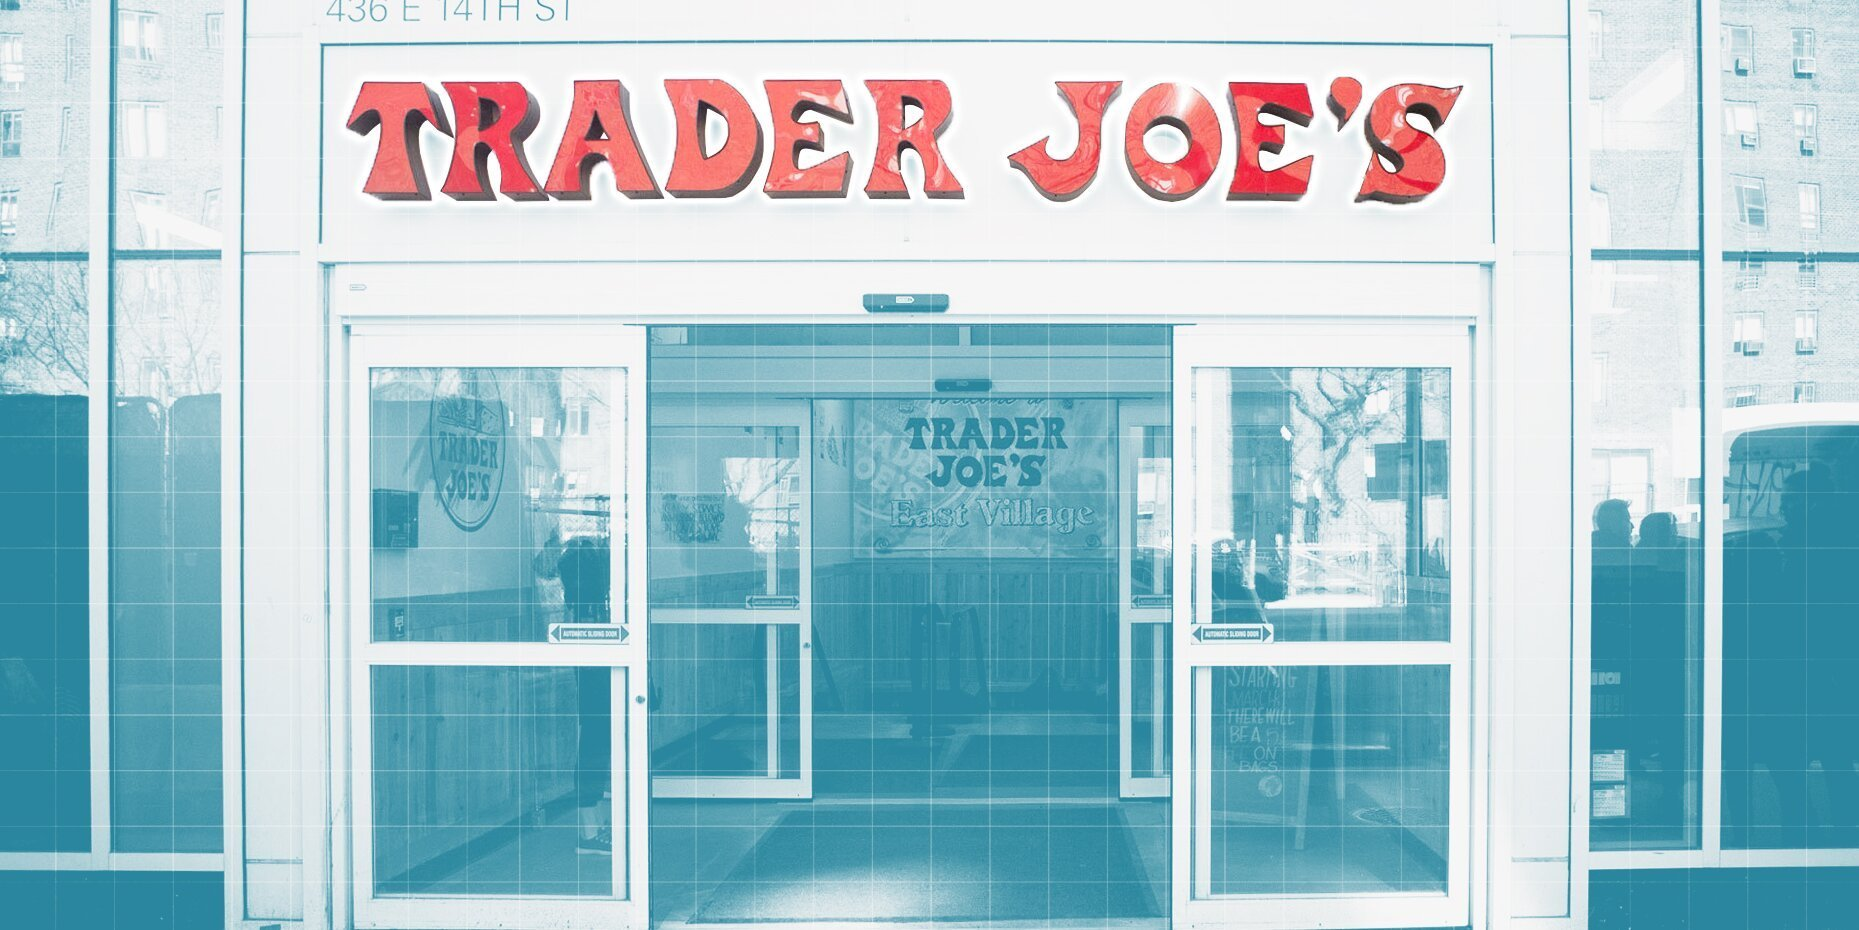 20 Trader Joe's Products Under $10 You'll Want to Buy Forever